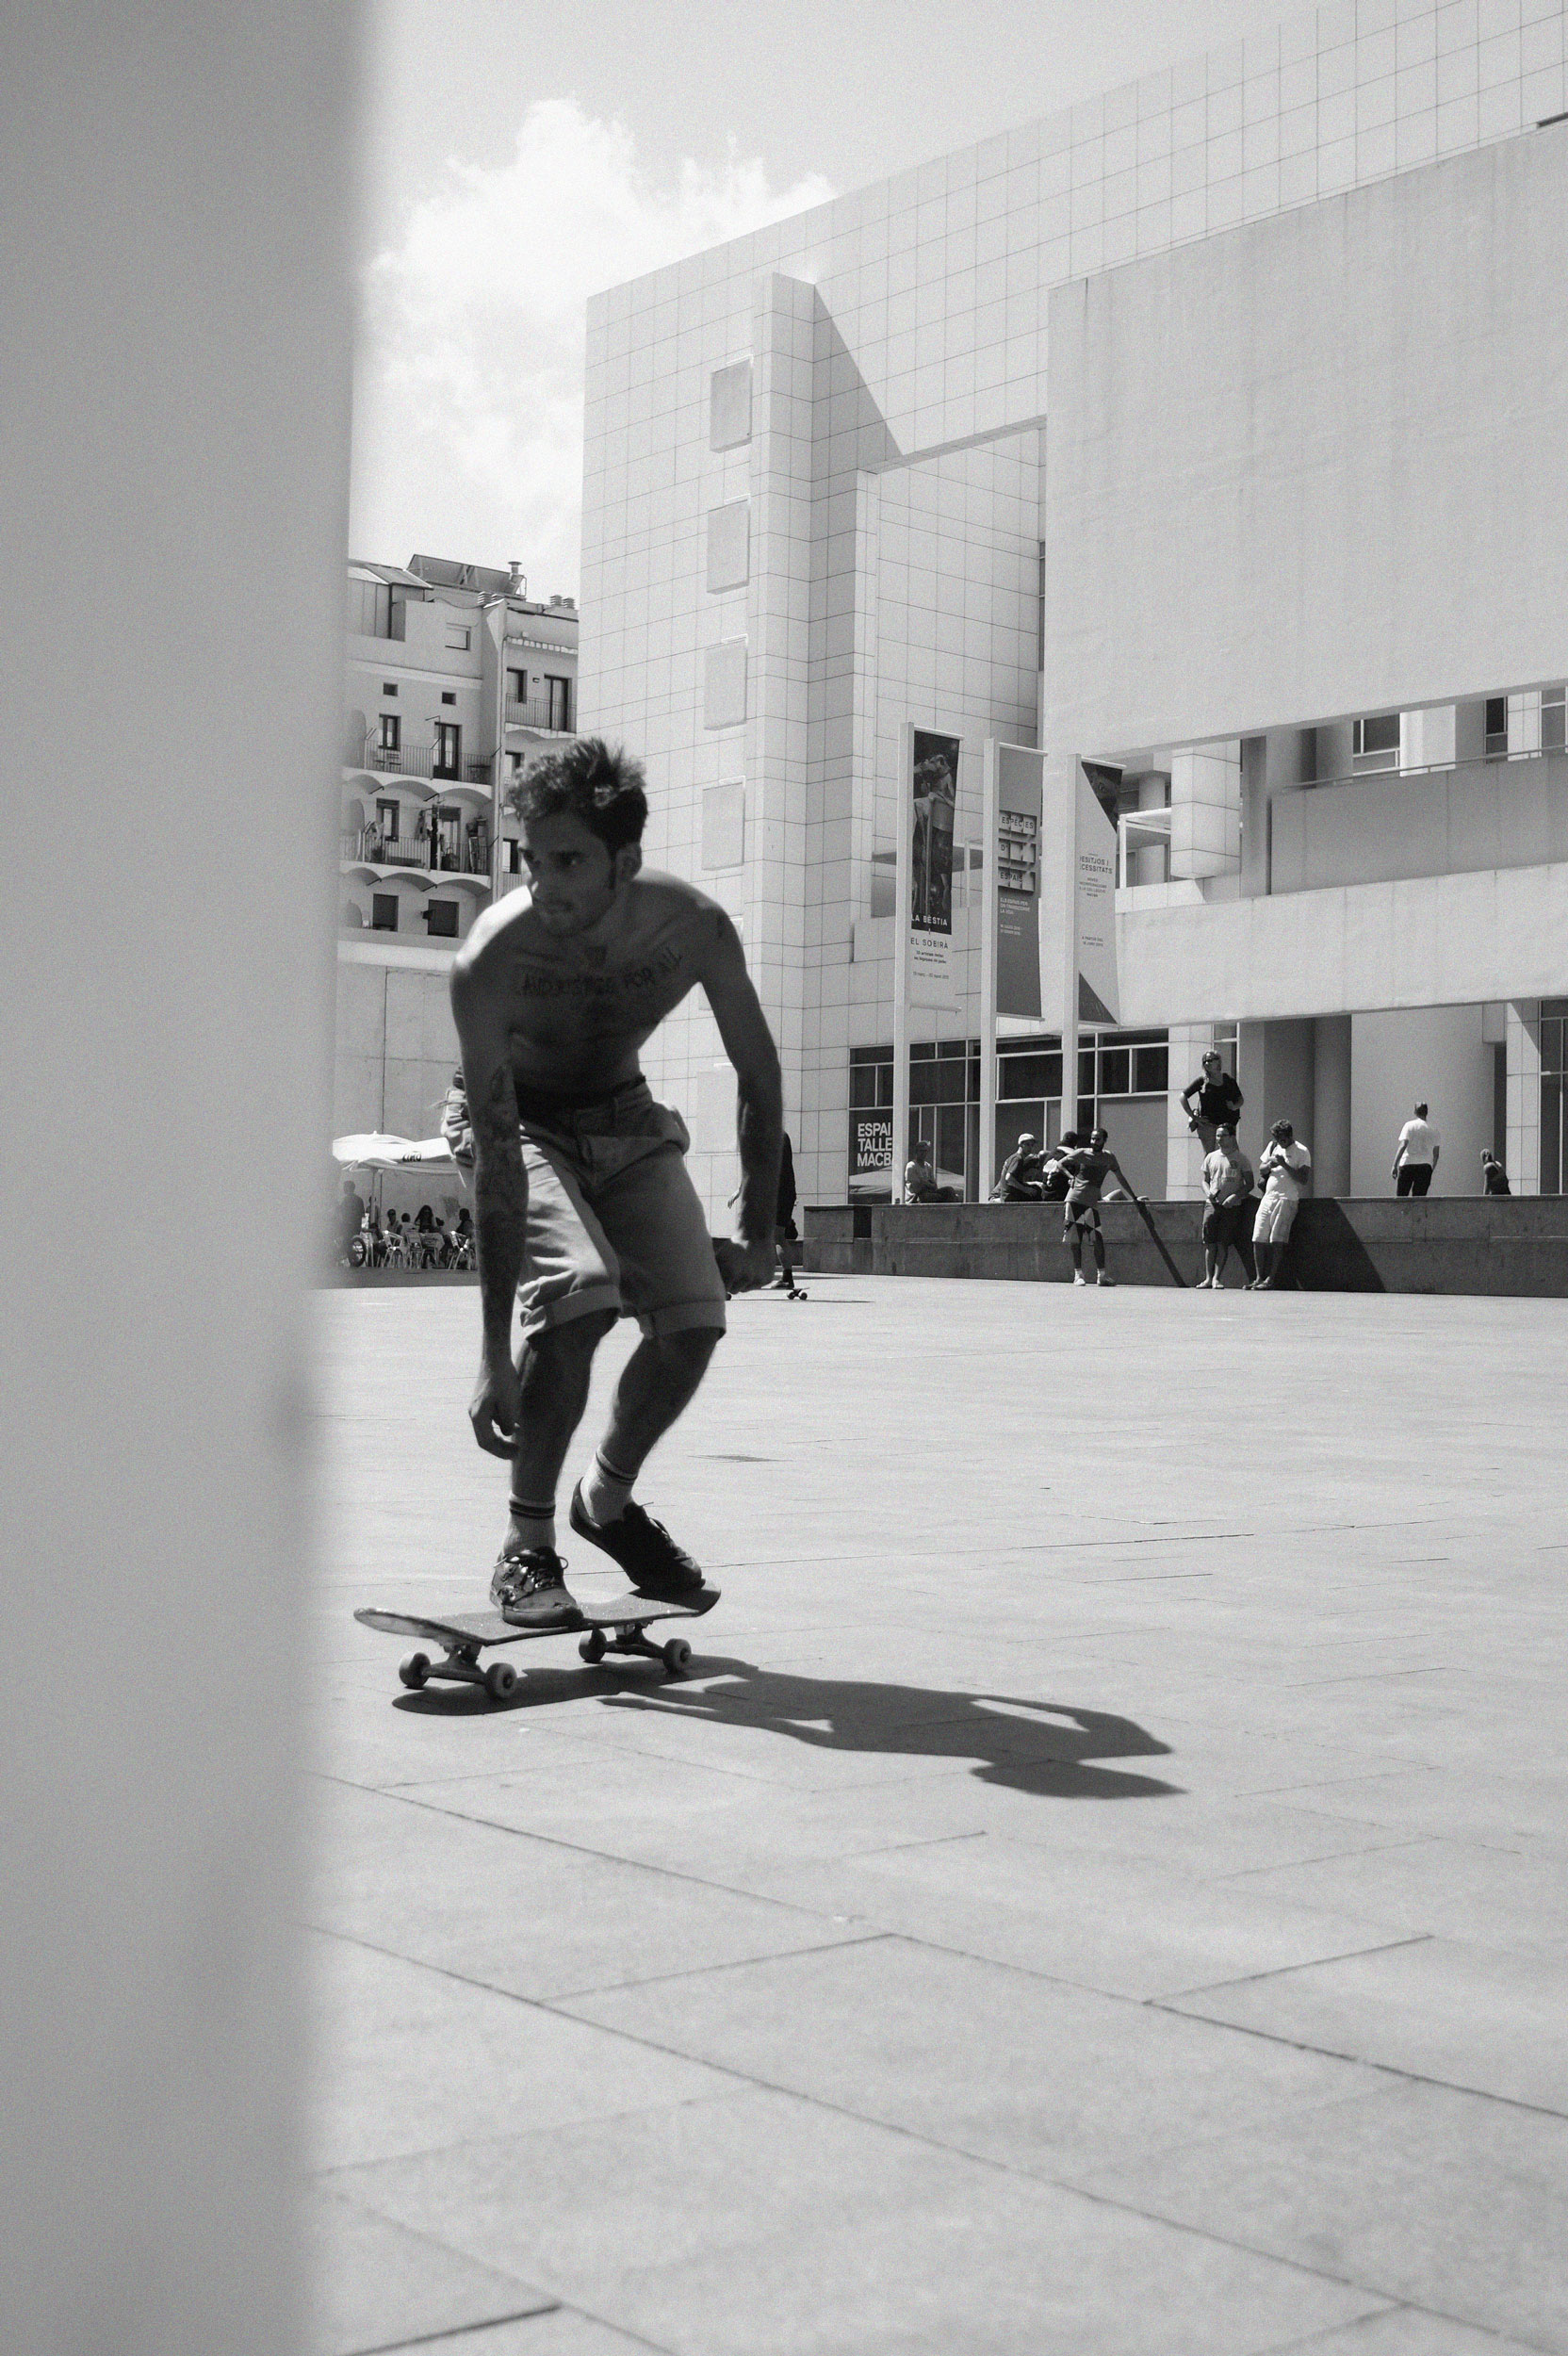 Skater-Barcelona-by-Jacob-Woyton